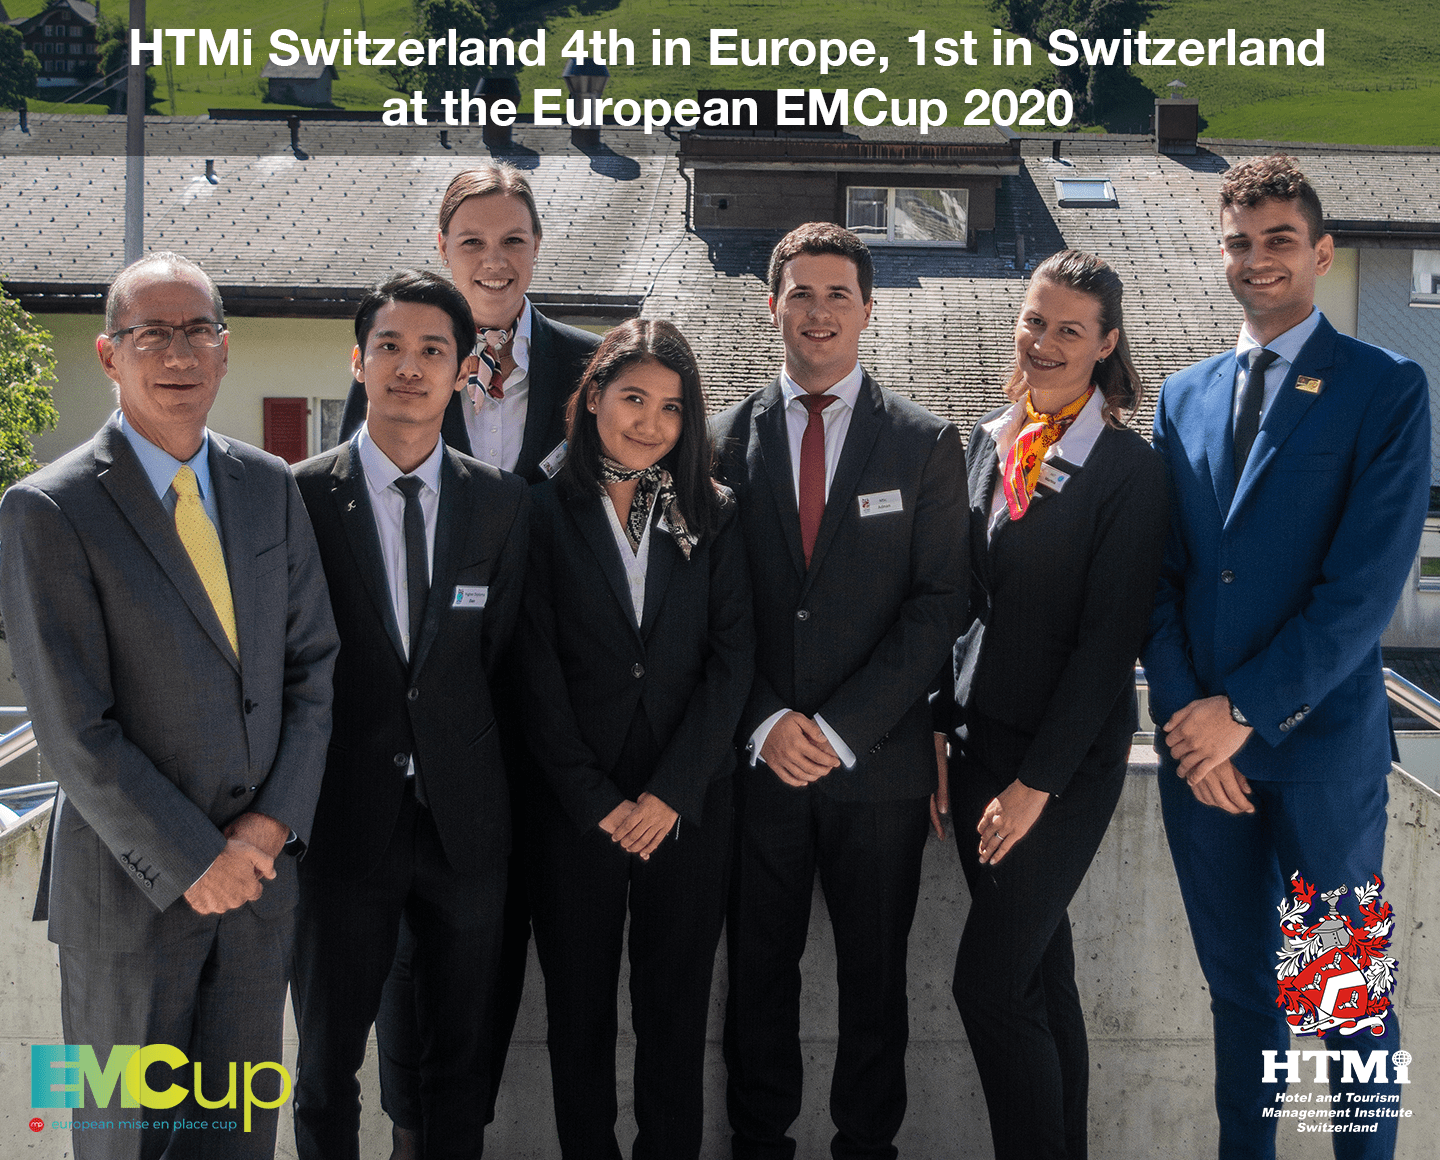 HTMi Switzerland 4th in Europe, 1st in Switzerland at the European EMCup 2020